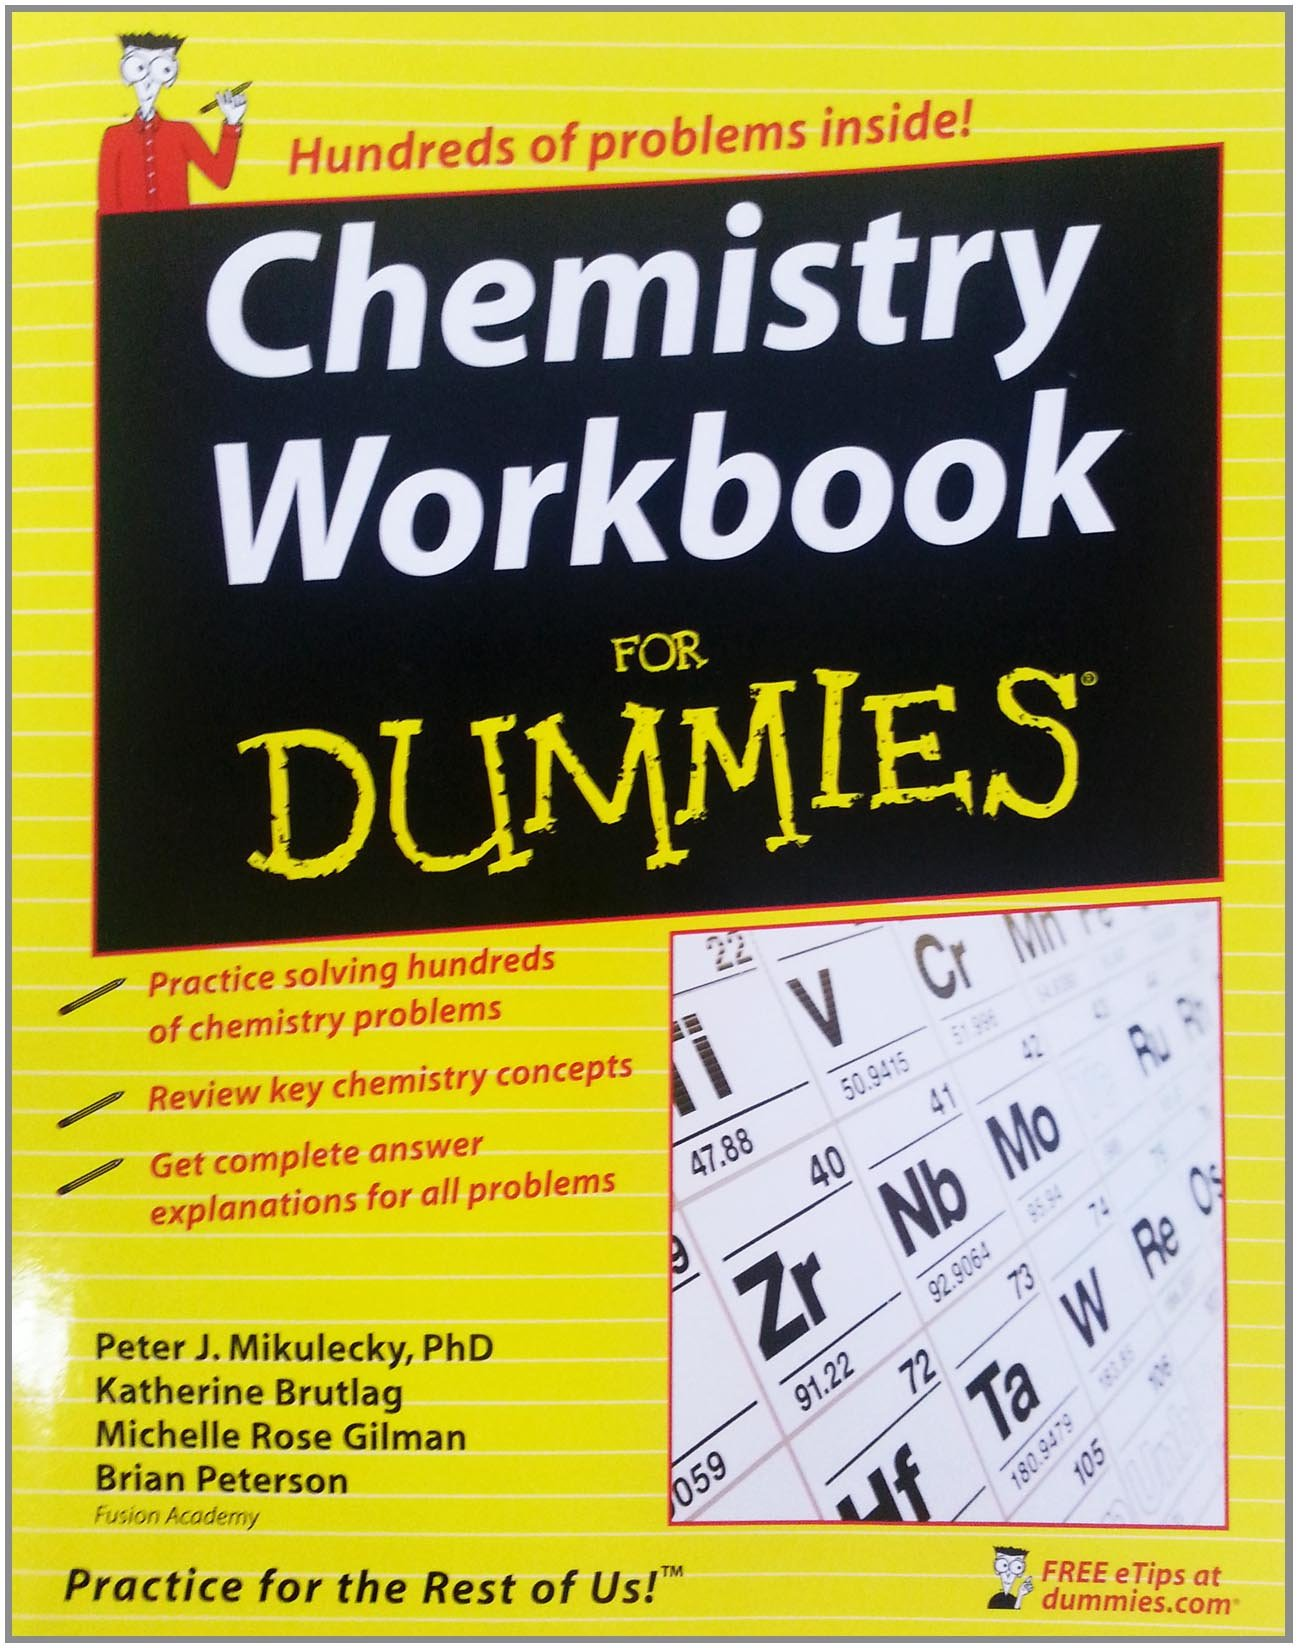 chemistry workbook for dummies co uk peter j mikulecky chemistry workbook for dummies co uk peter j mikulecky katherine brutlag michelle rose gilman brian peterson 9780470251522 books